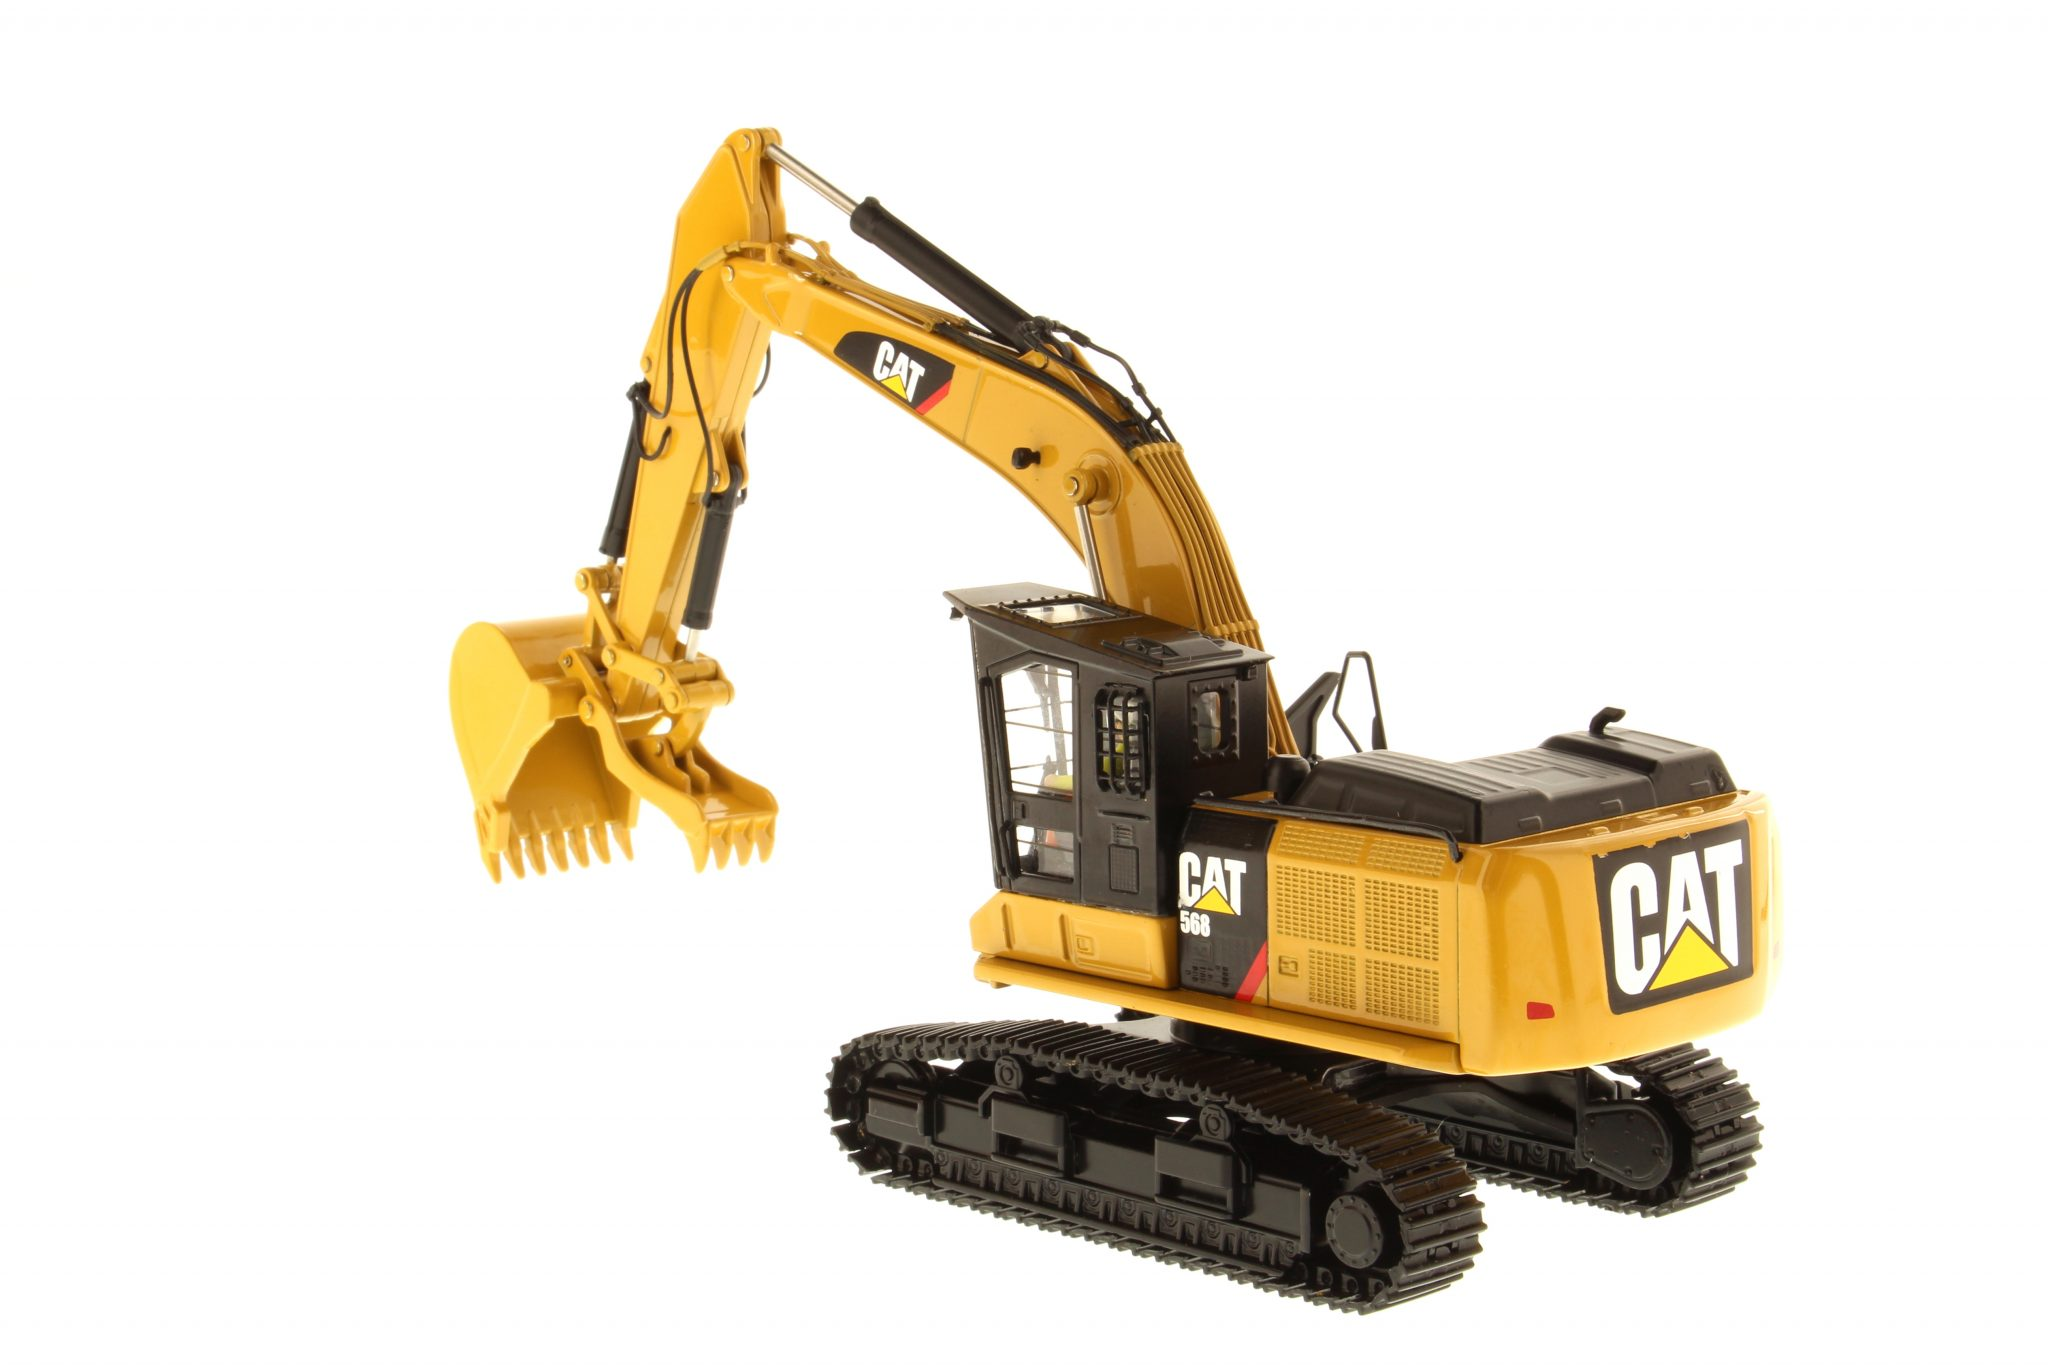 cat 568 gf road builder former tr40003 85923 catmodels com